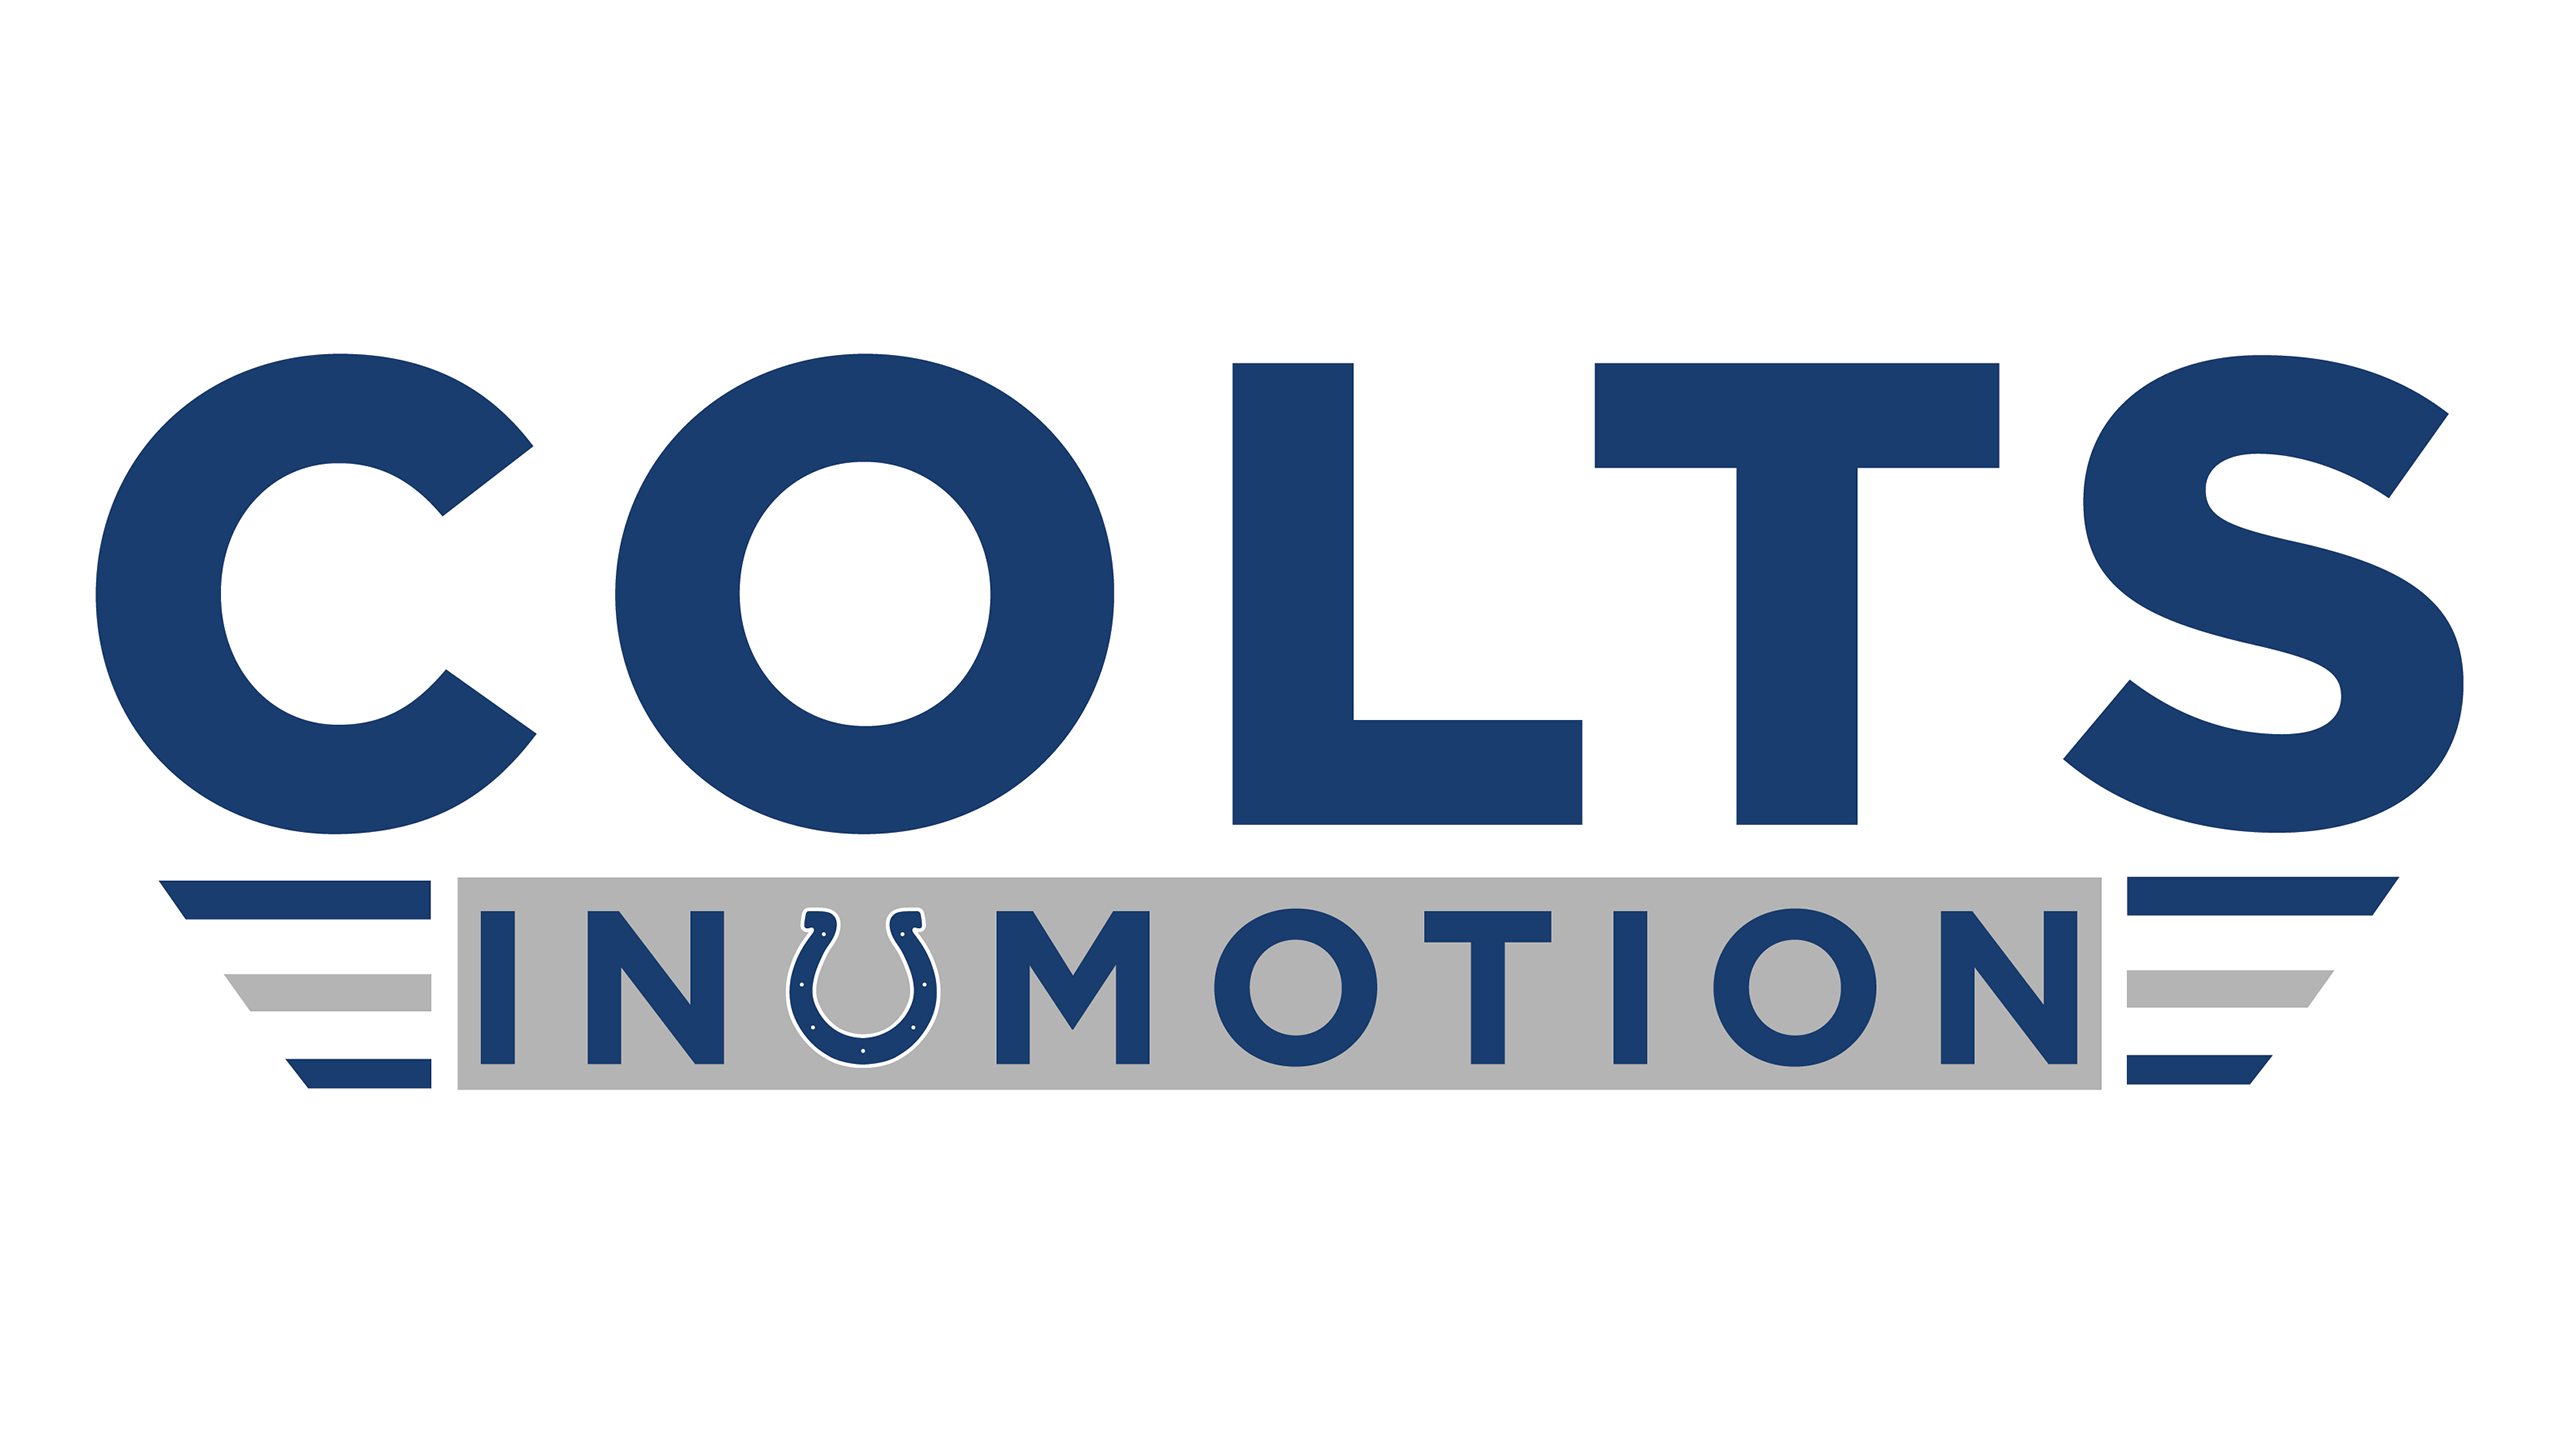 In 2017, Colts In Motion visited events all over Indiana and Kentucky!